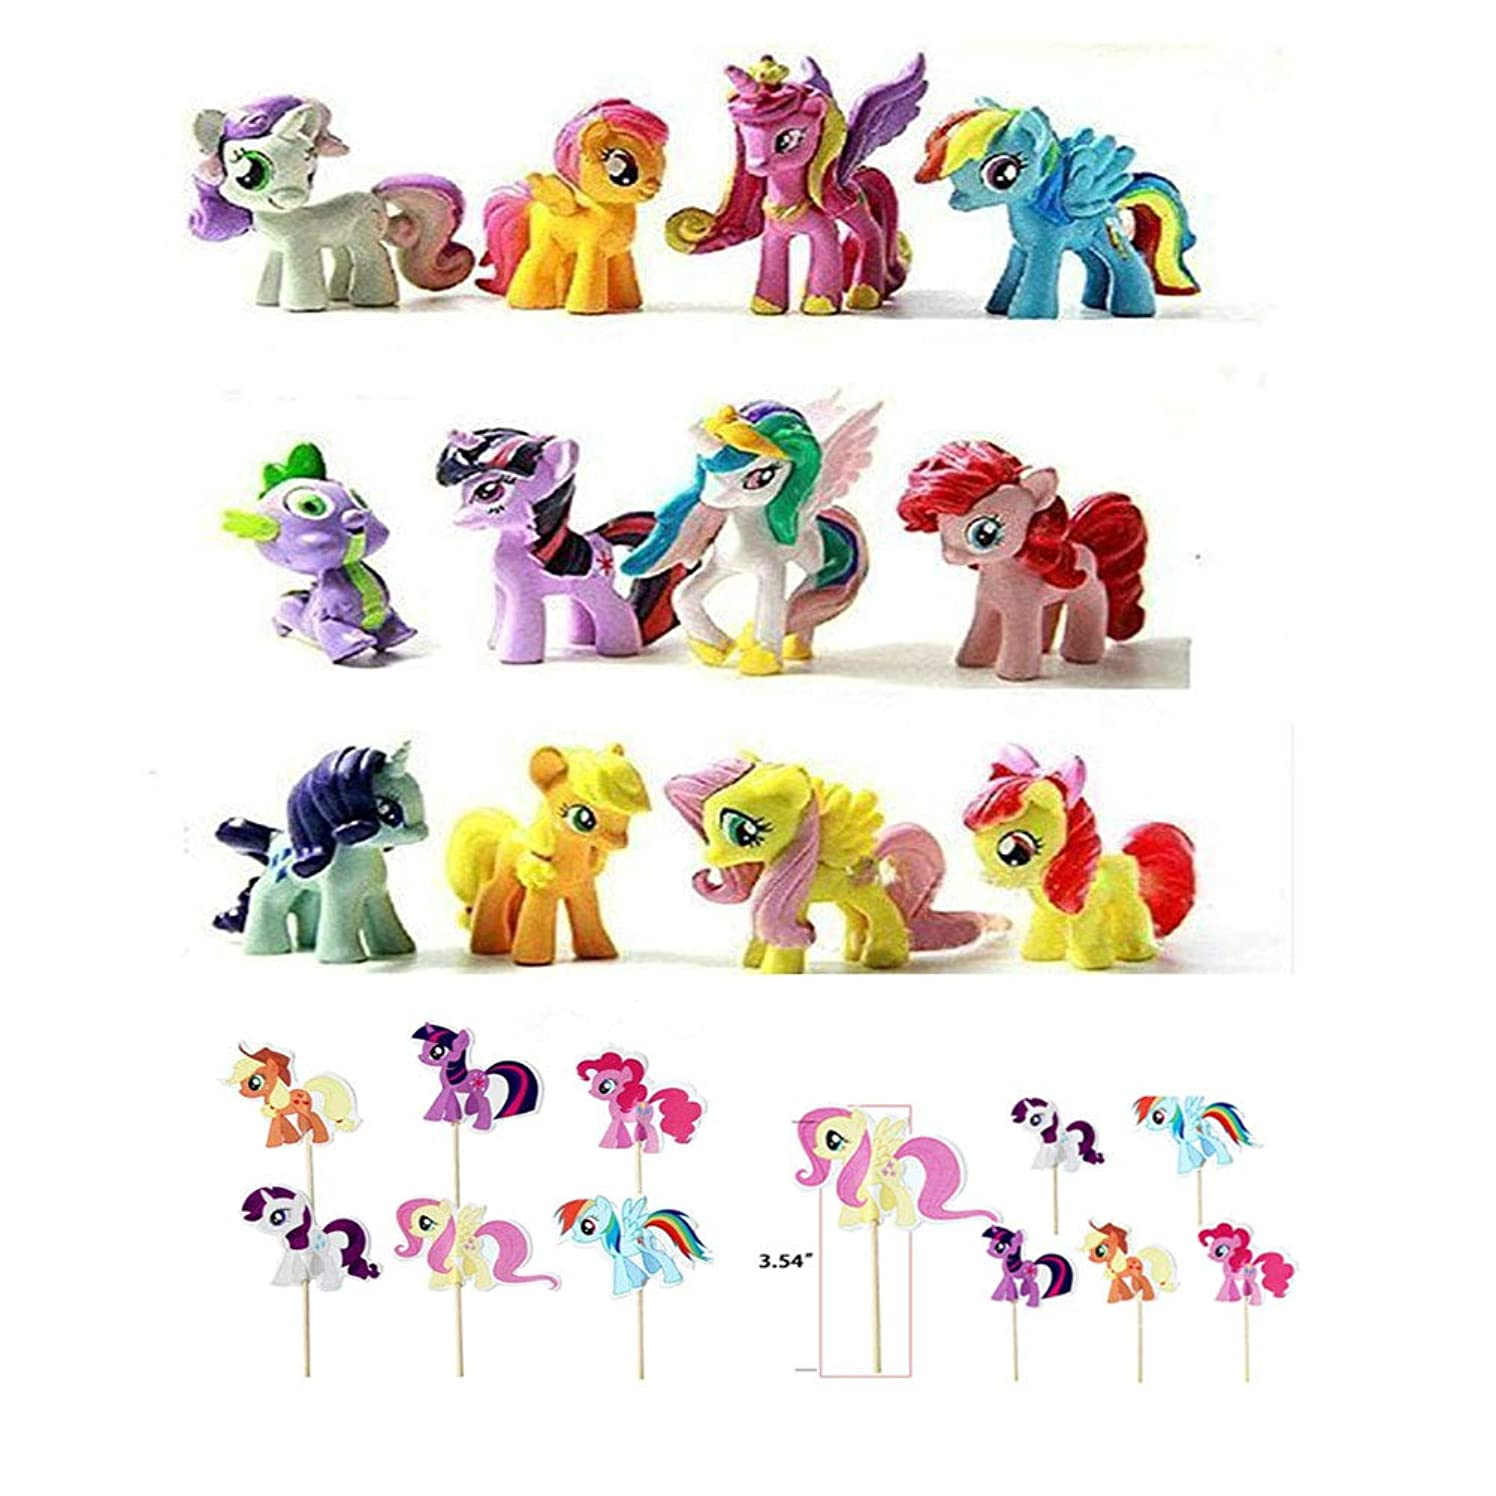 Playoly 12 Pony Dolls Figures with 24 Cupcake Pick, 1.5-2' Tall Pony Figure Toys For Kids Cupcake Cake Toppers